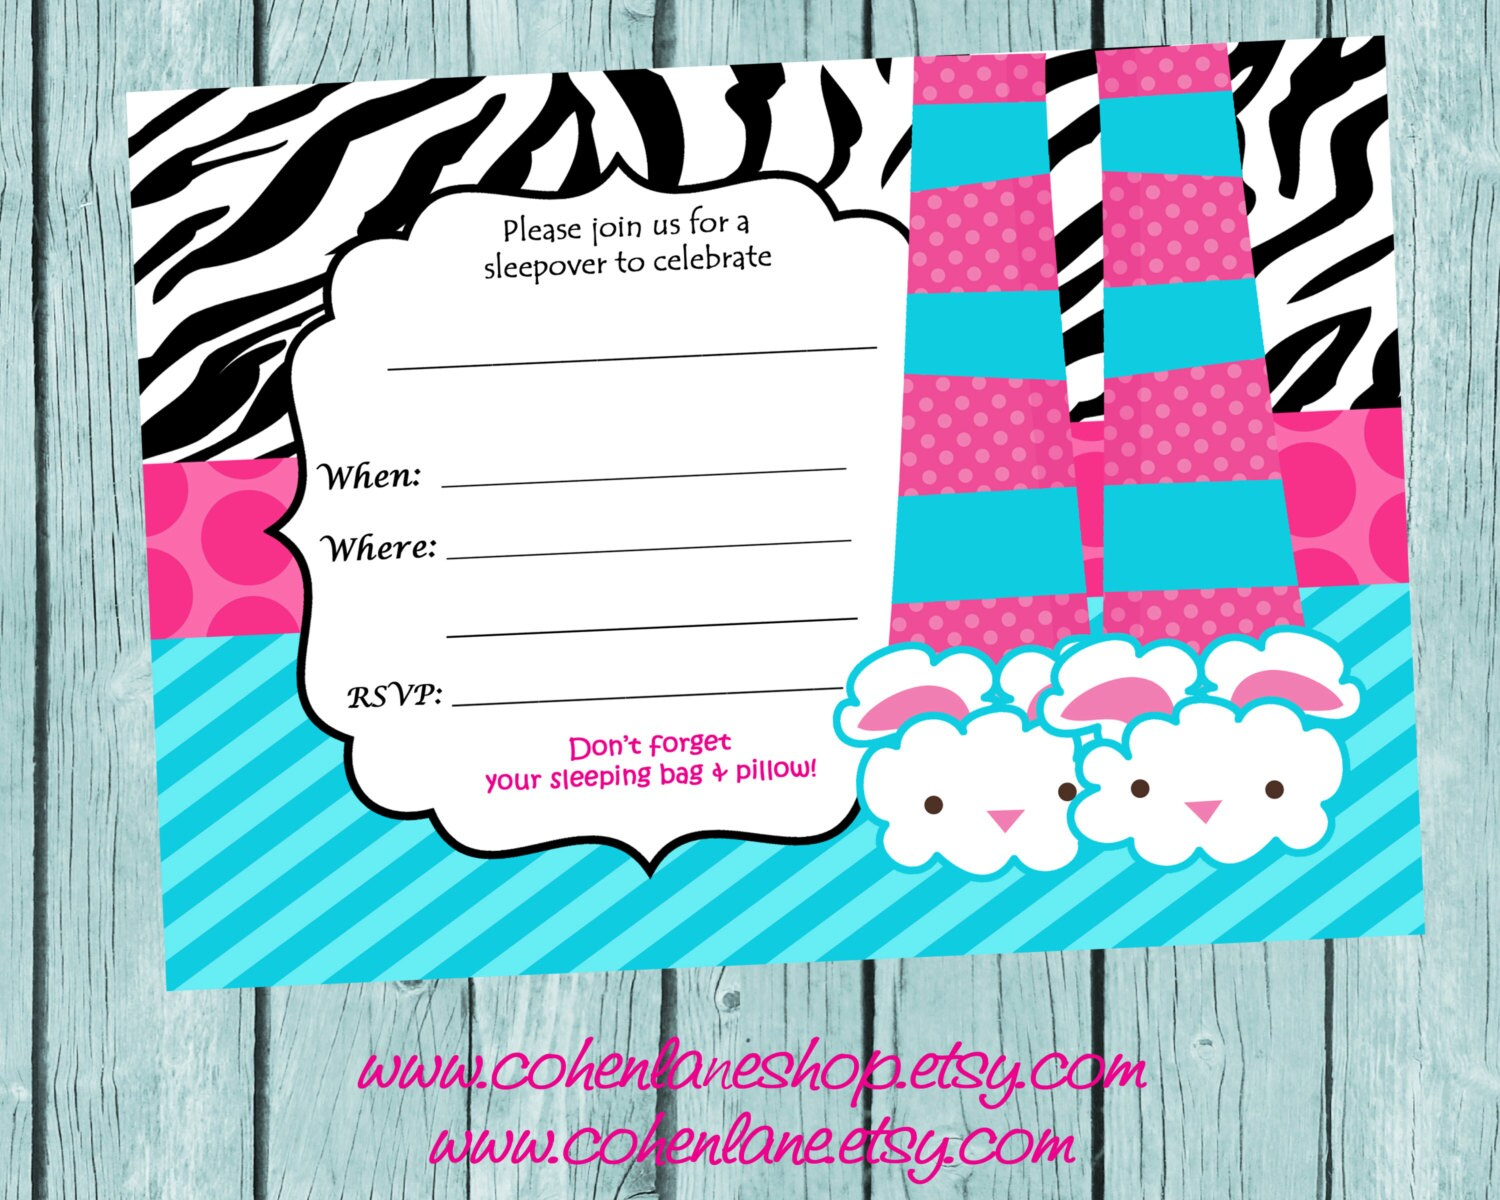 Instant Download Fill In Sleepover Party Invitation. Fill in